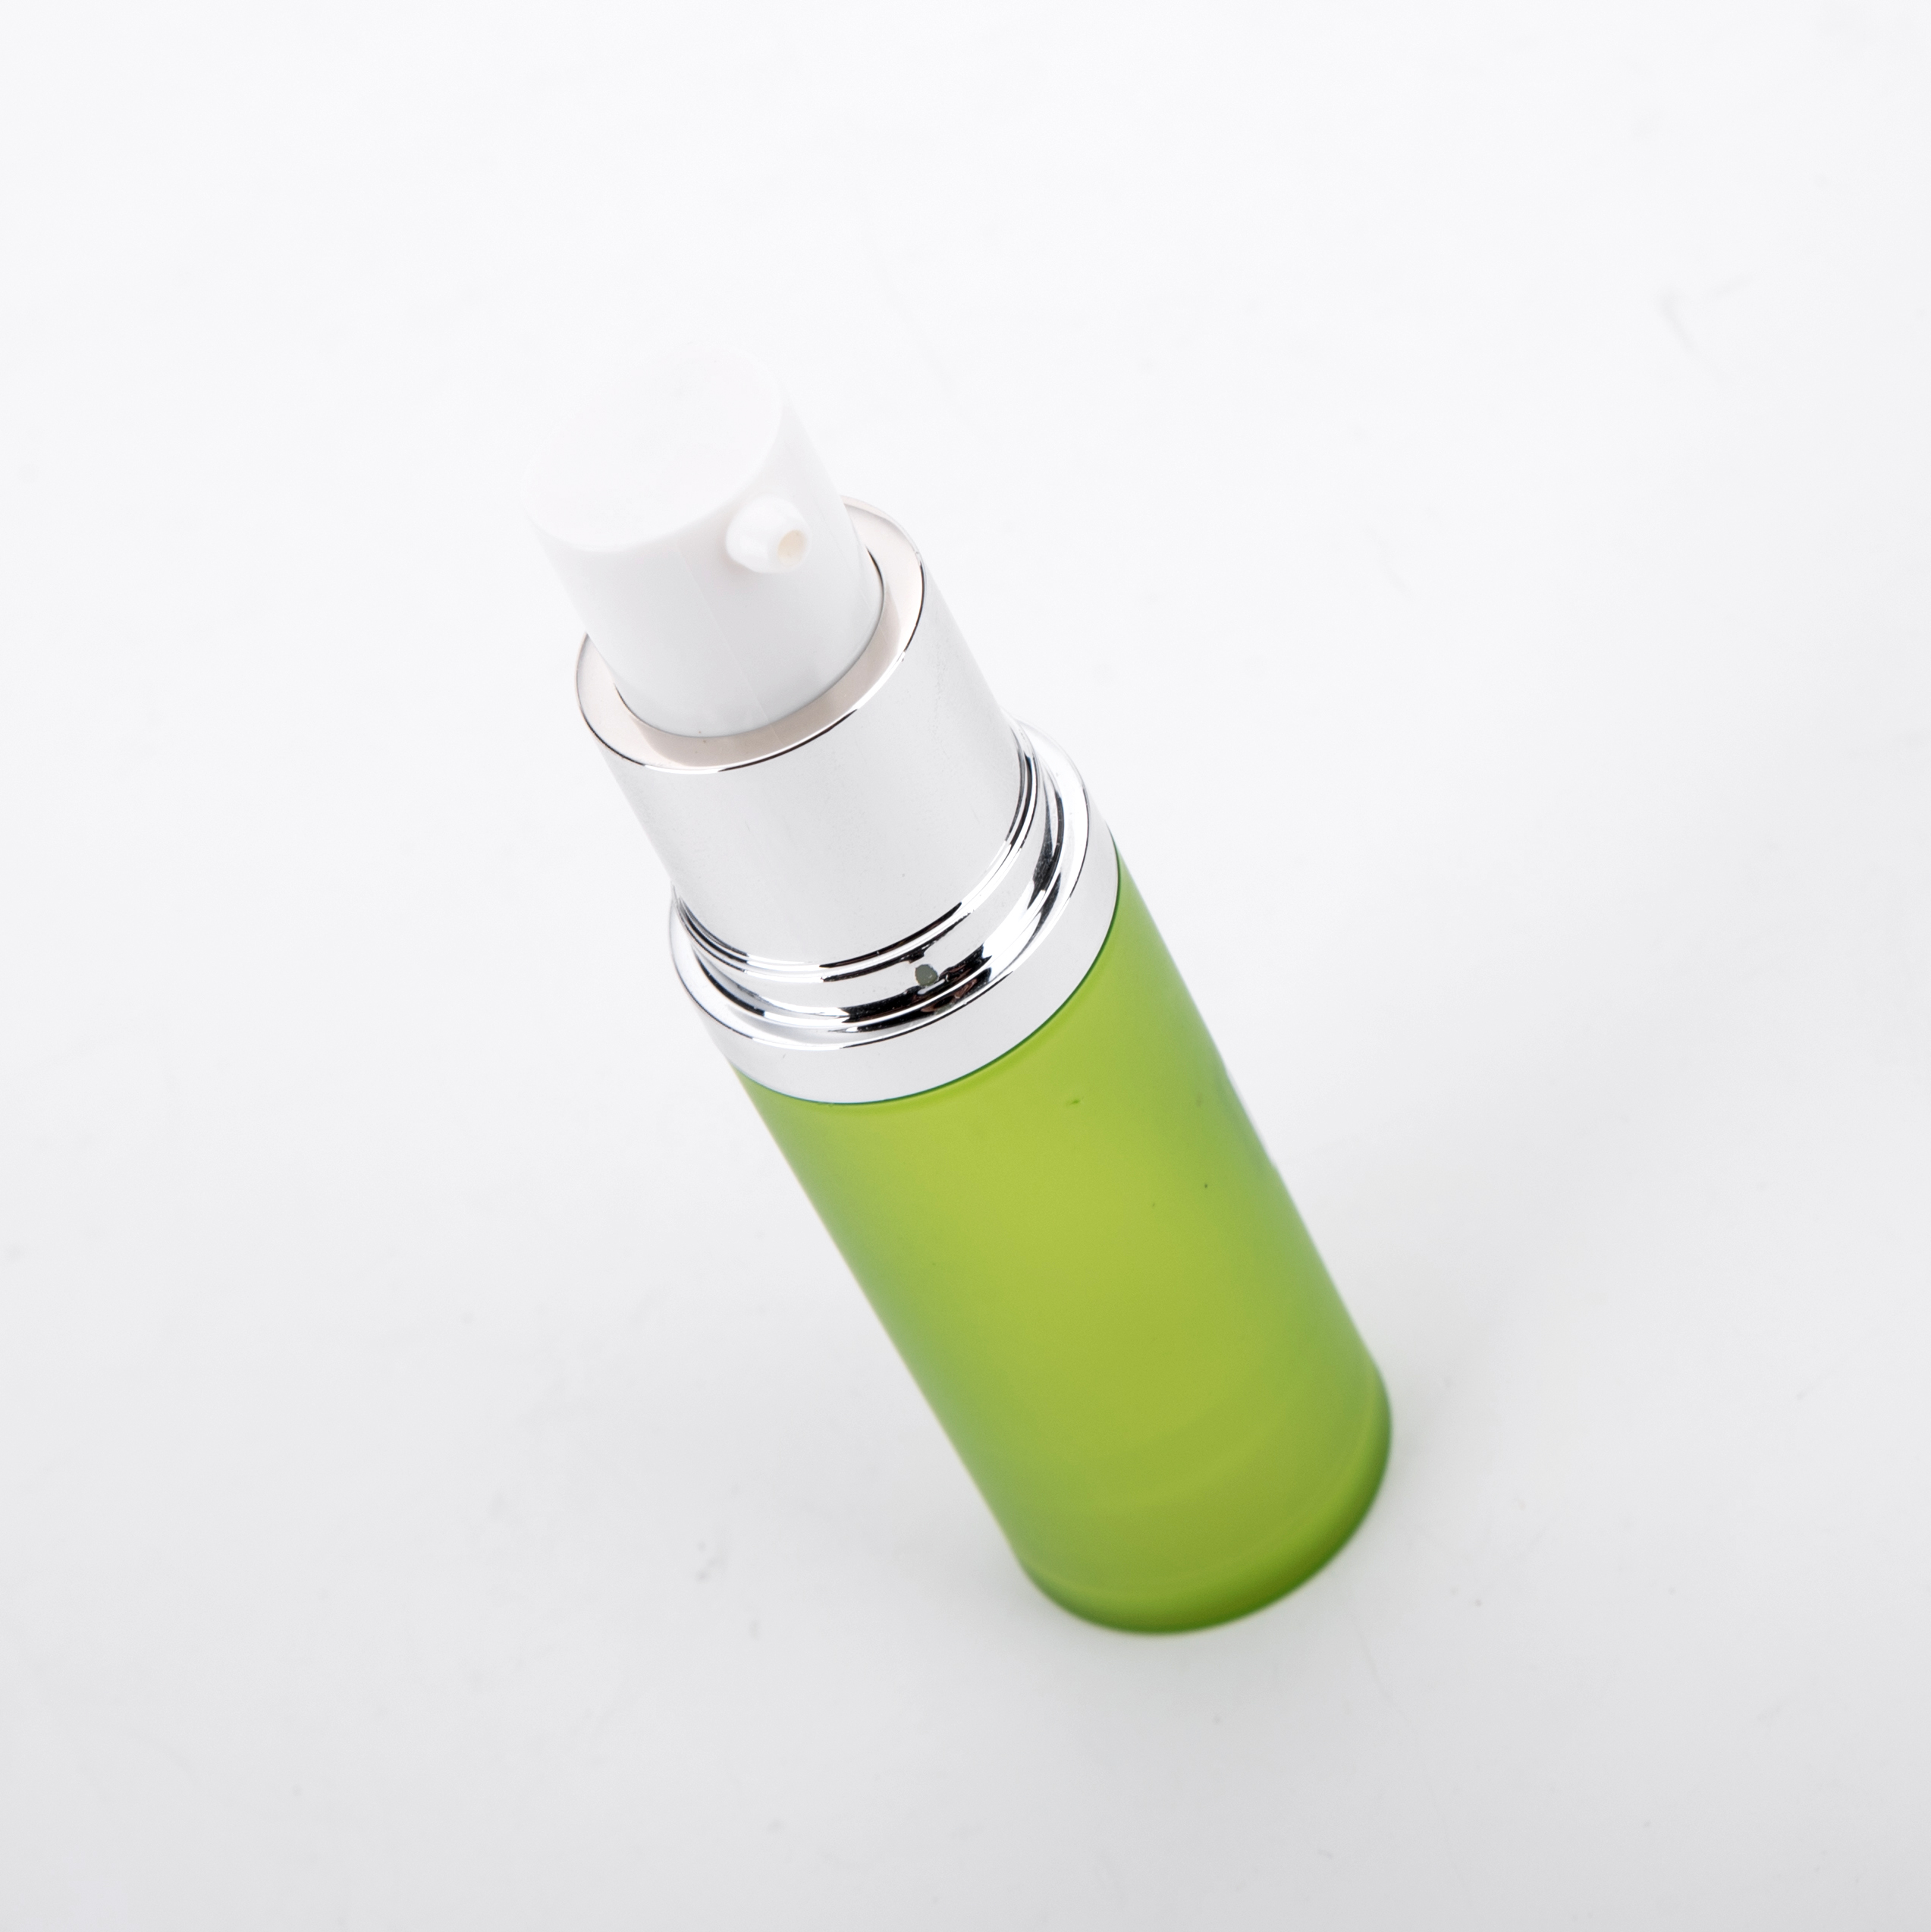 15ml 20ml 30ml 50ml Round Empty Green Plastic Bottle